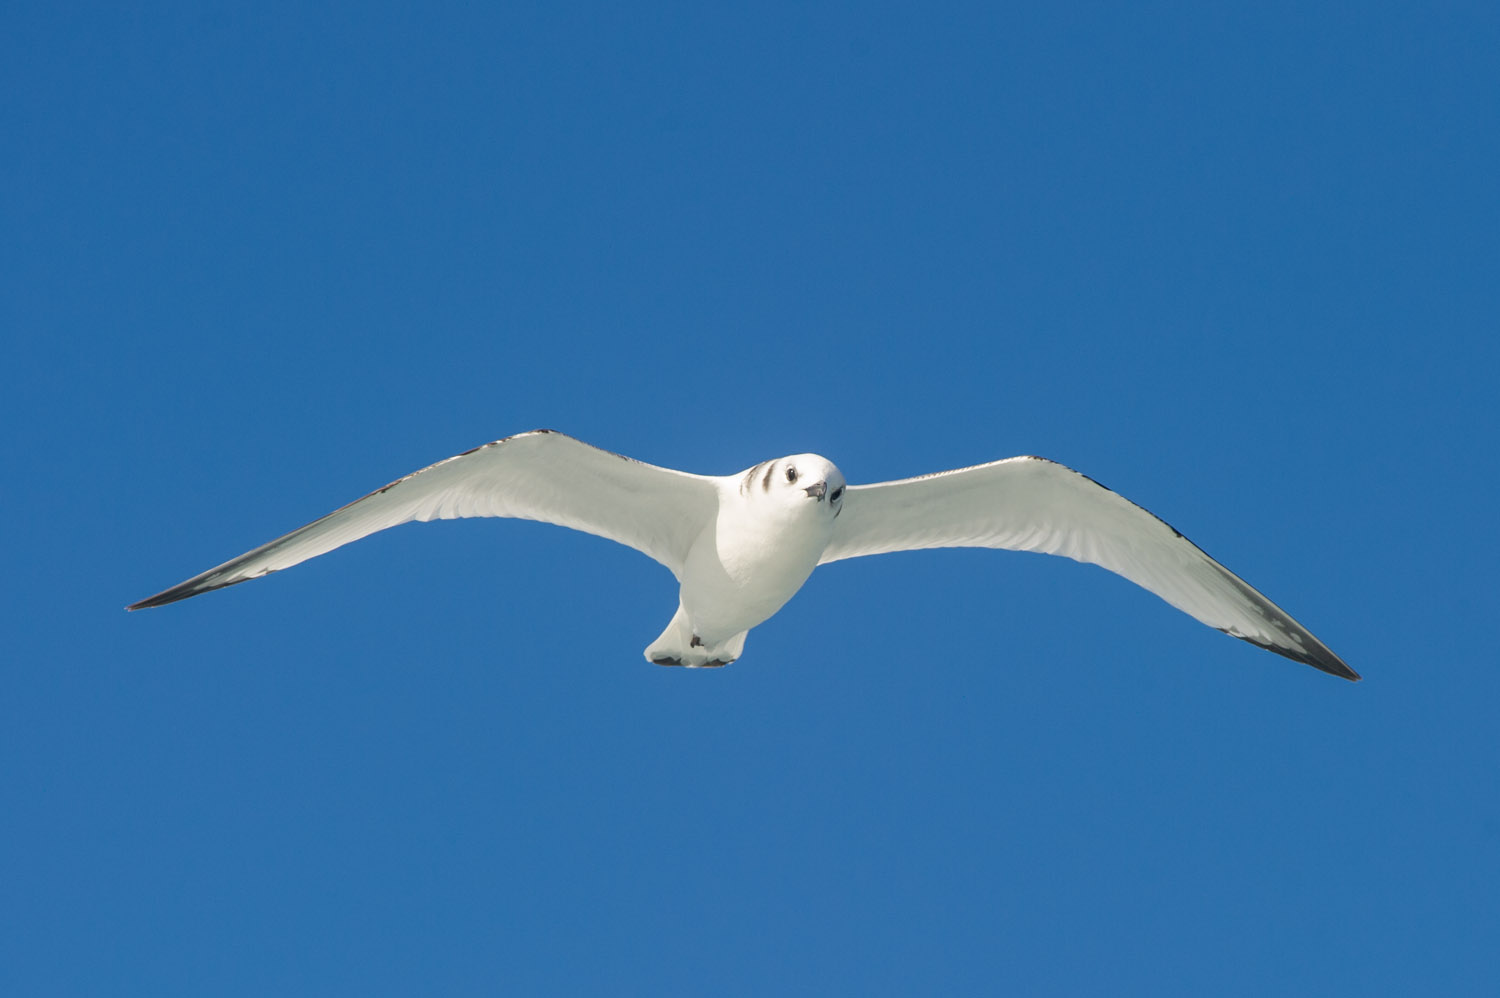 A very striking Bonaparte's Gull looks down at the boat